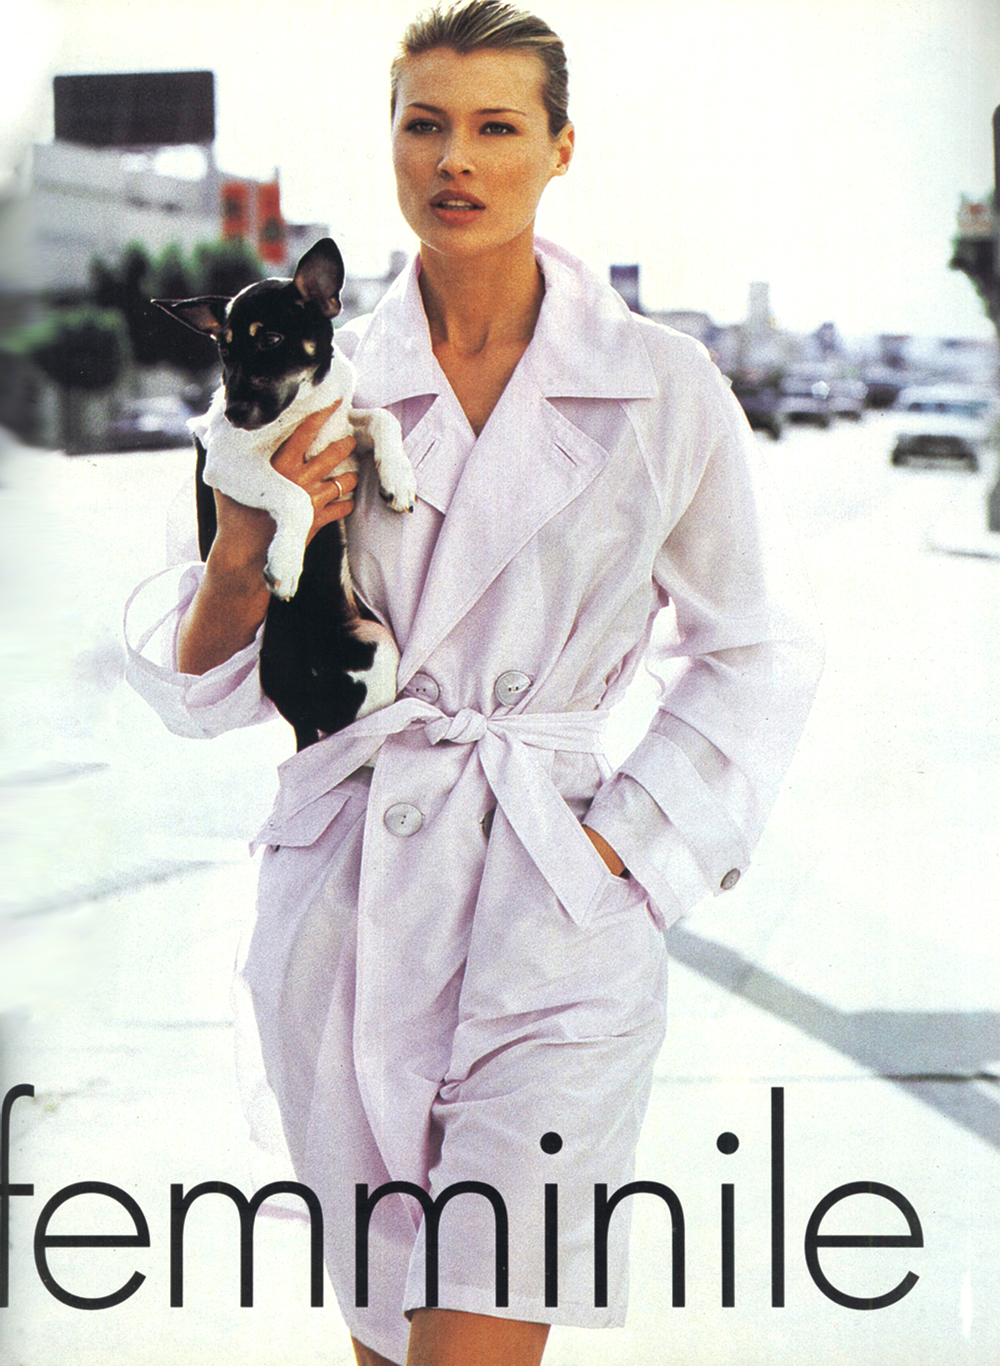 Vogue Italia March 1995 via fashionedbylove.co.uk